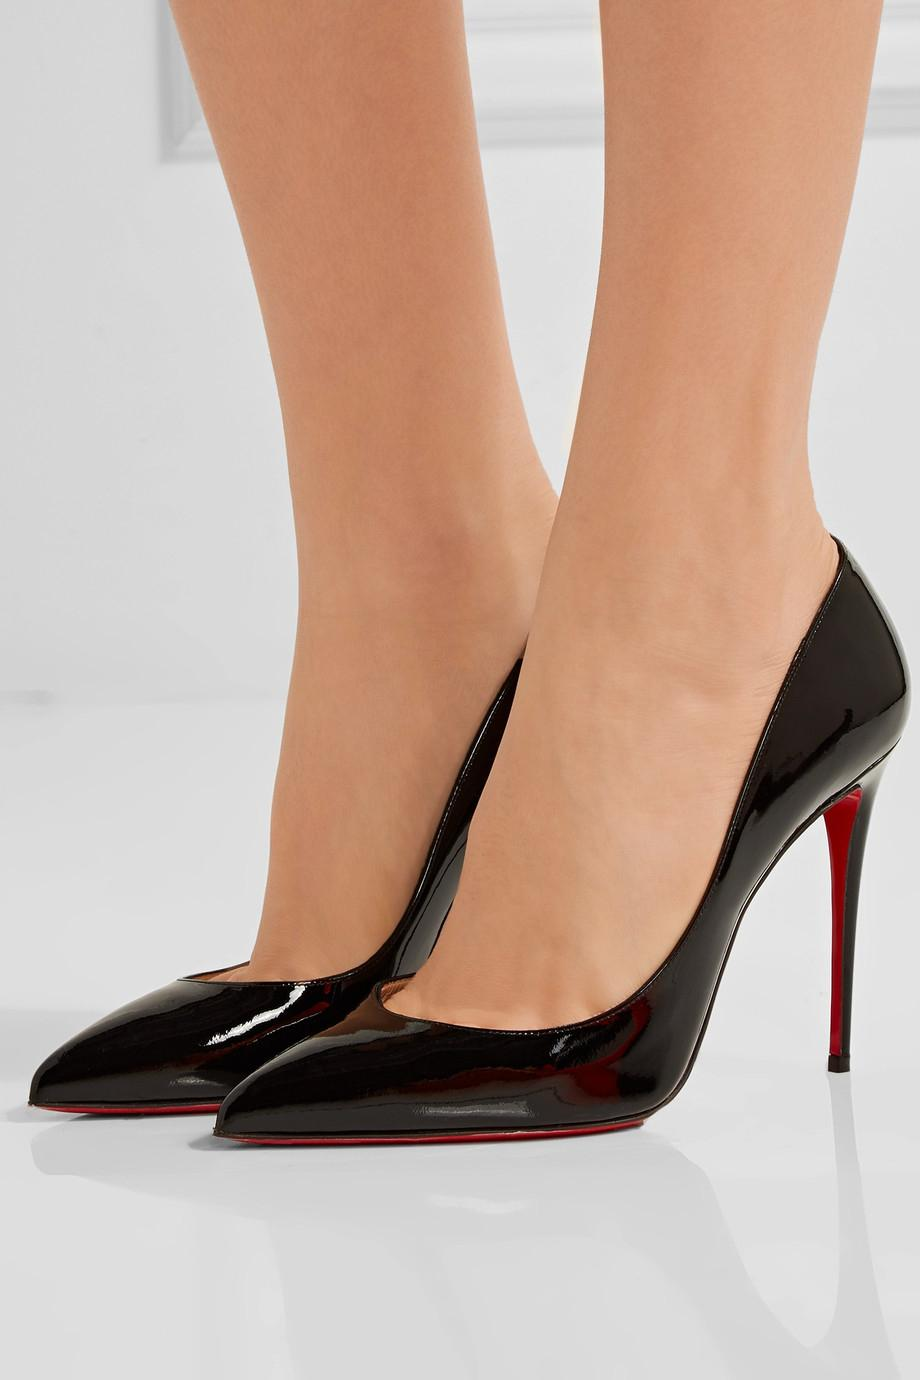 Christian Louboutin Pigalle Follies 100 Leather Point Toe Pumps RbBLl